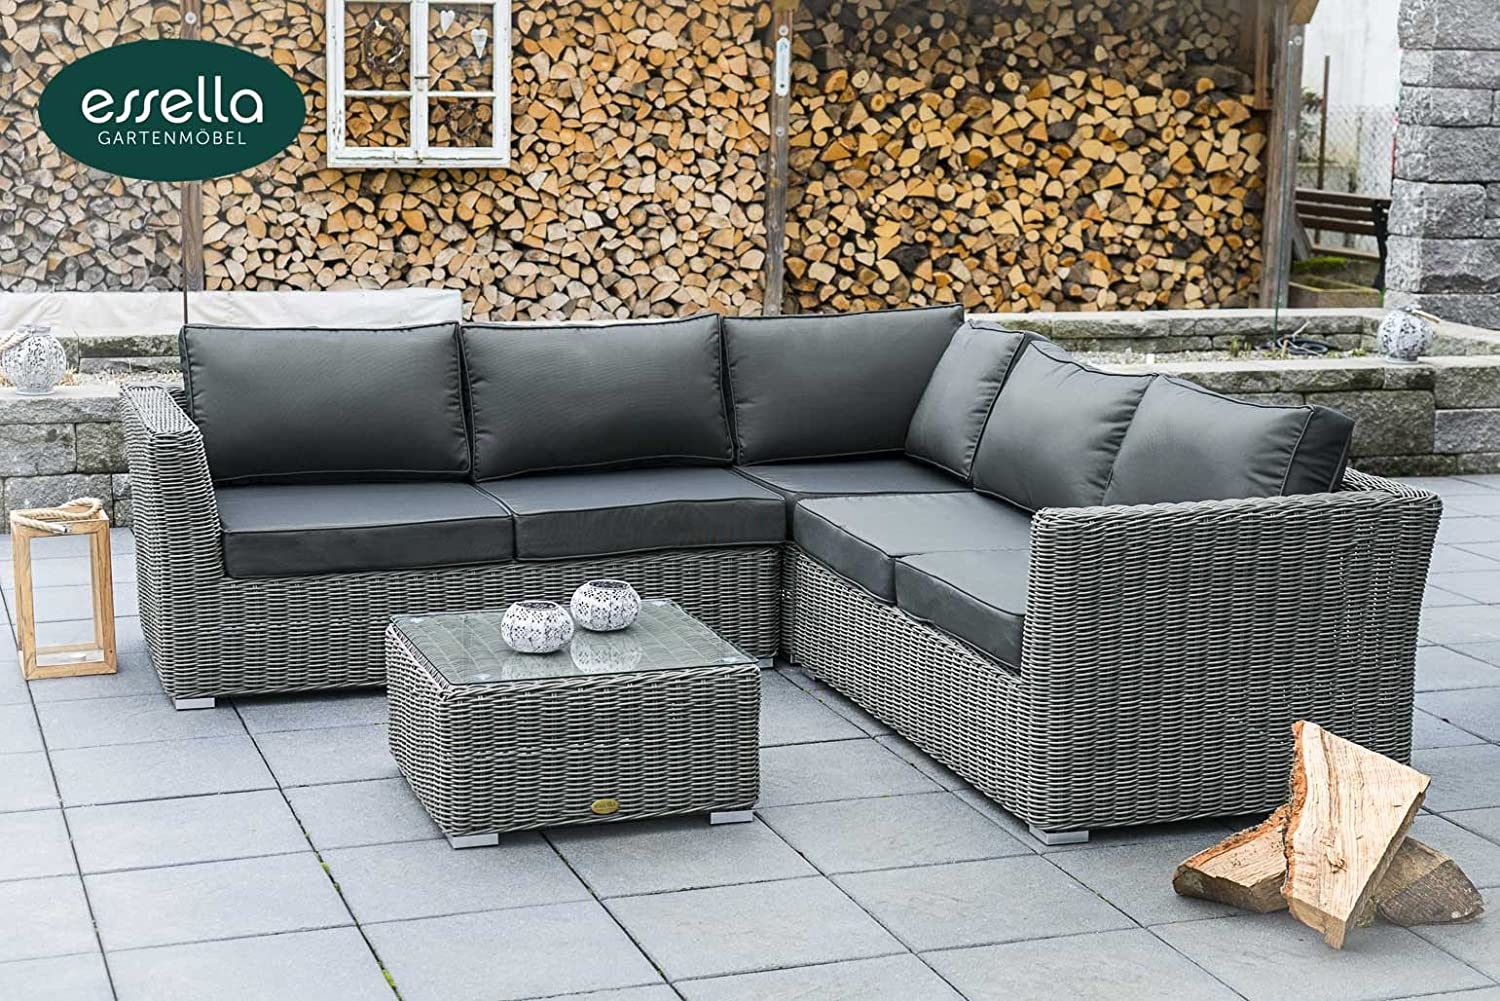 polyrattan lounge boston 5 personen rundgeflecht grau rund gartenm bel terassenm bel. Black Bedroom Furniture Sets. Home Design Ideas